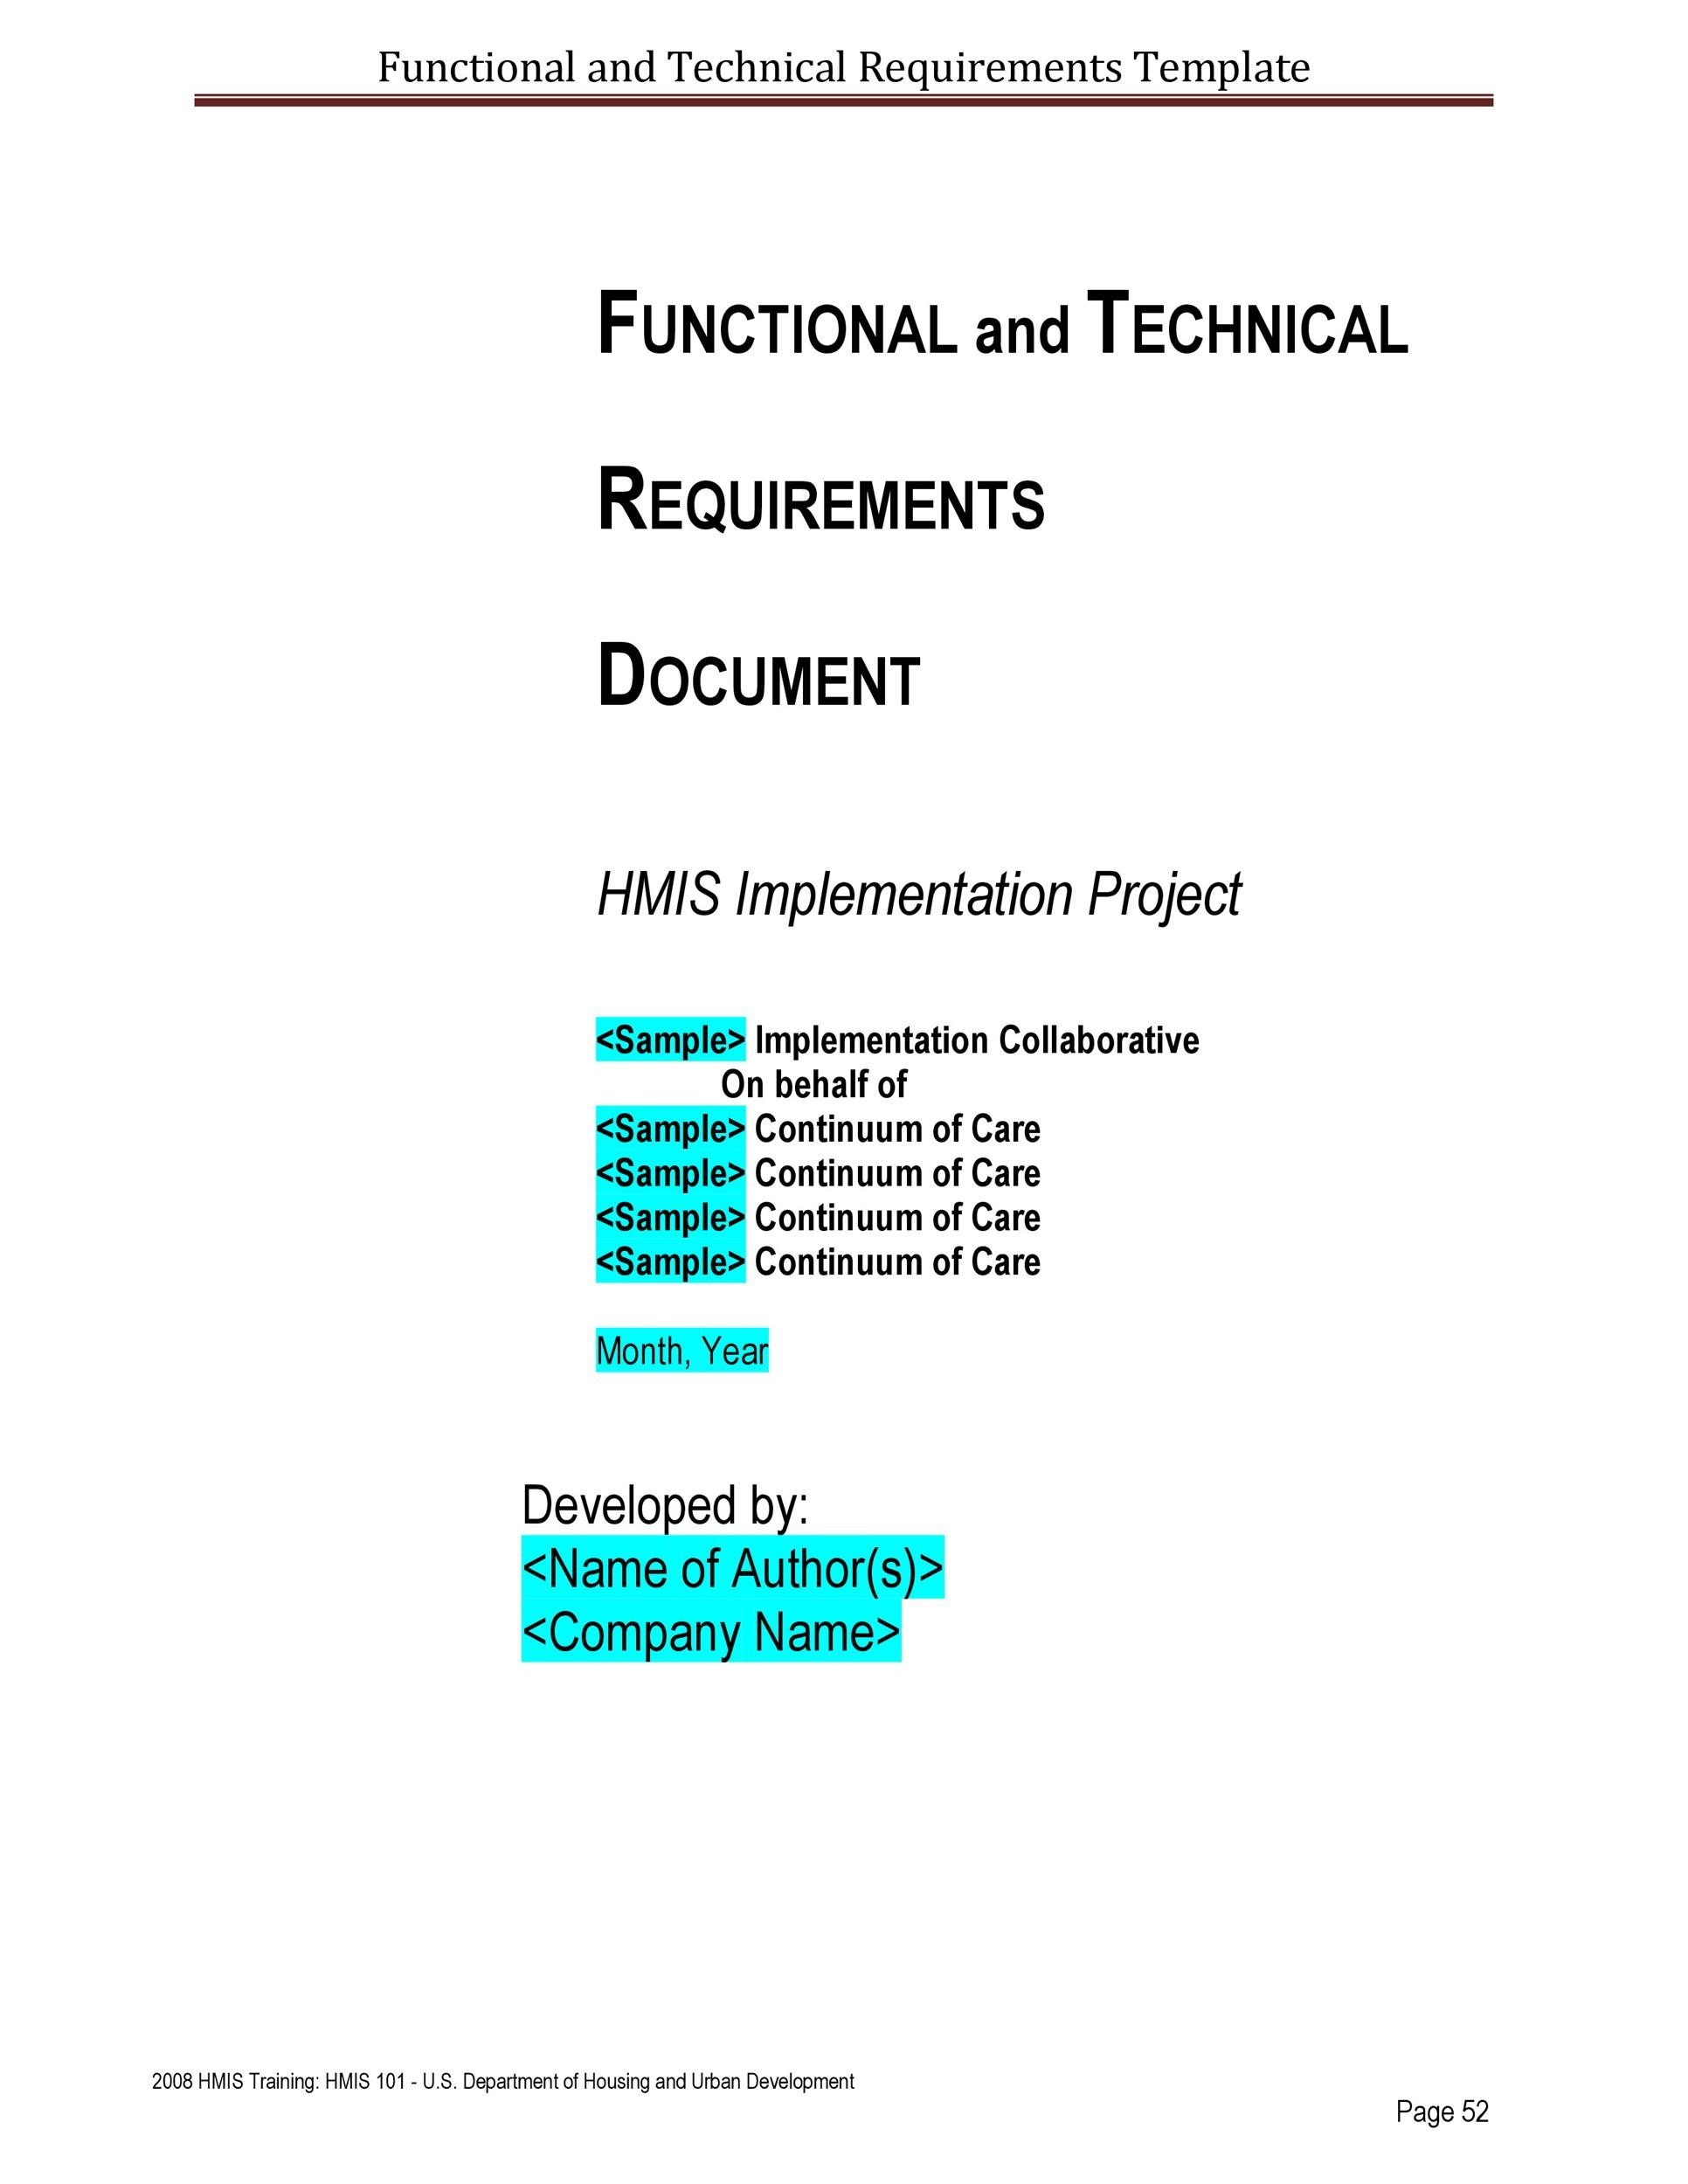 40 Simple Business Requirements Document Templates ᐅ Templatelab